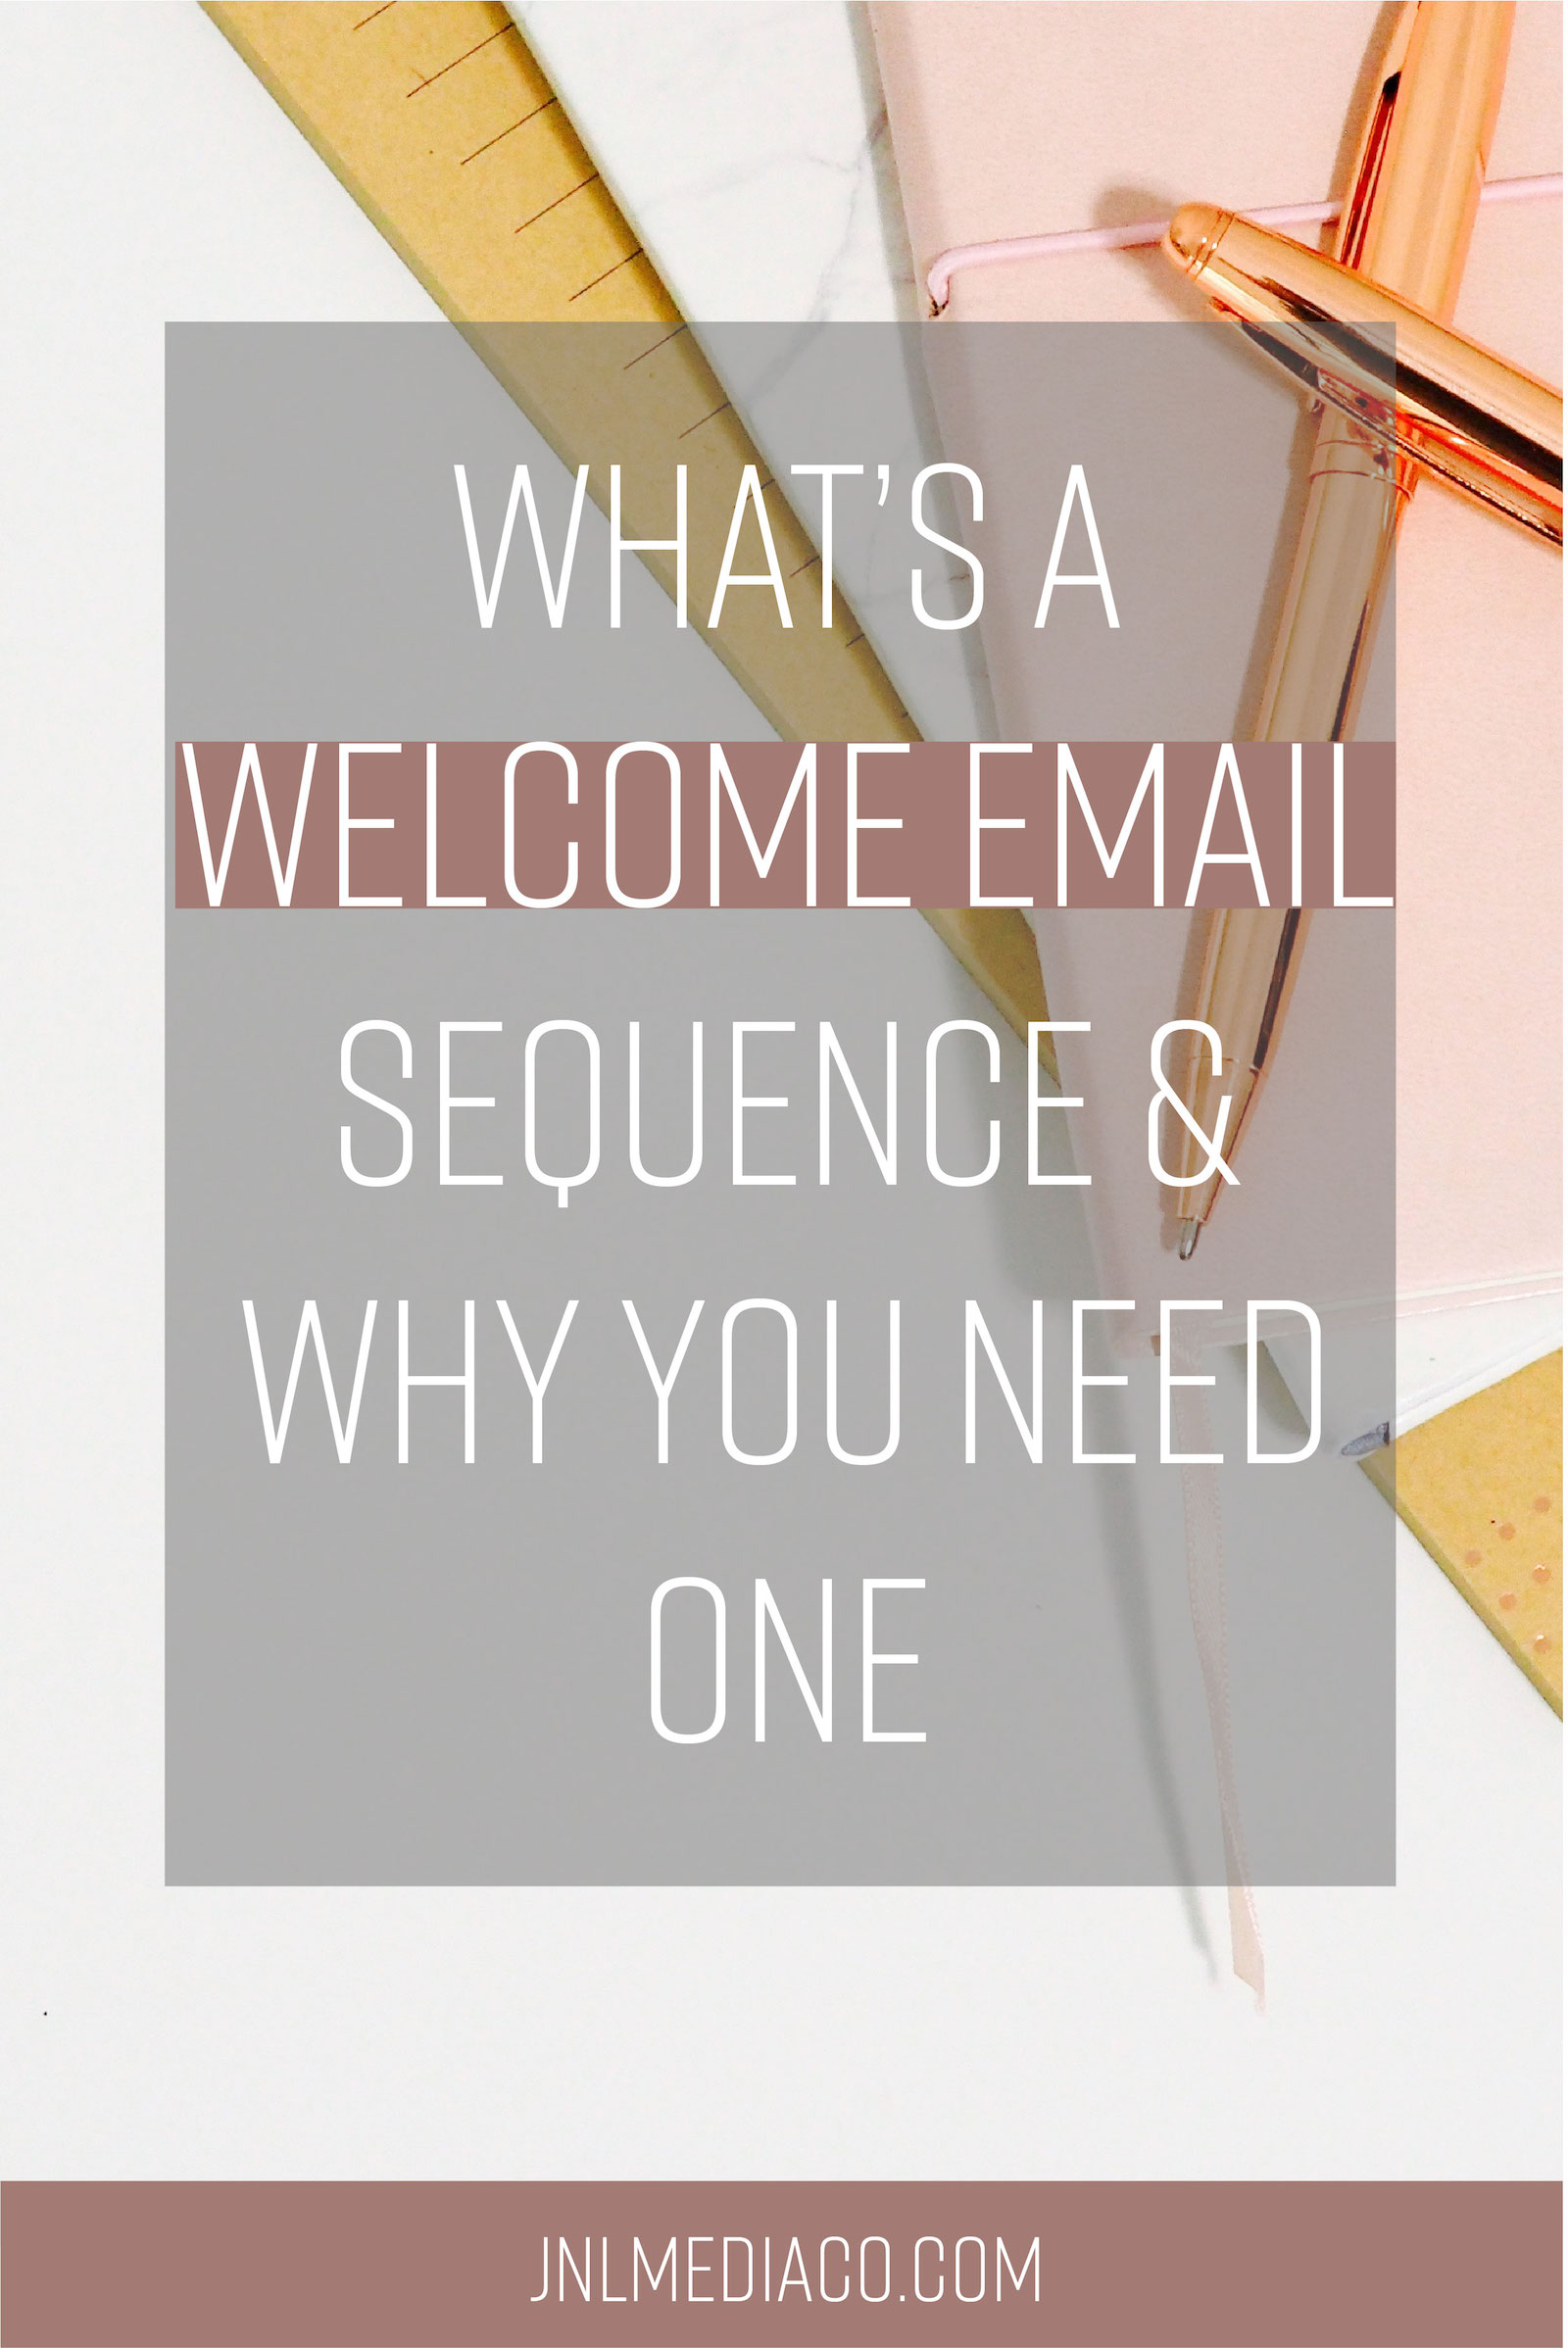 Why exactly should you have an welcome email sequence? Find out why you should jump on this asap and see an example of what I include in my welcome emails.